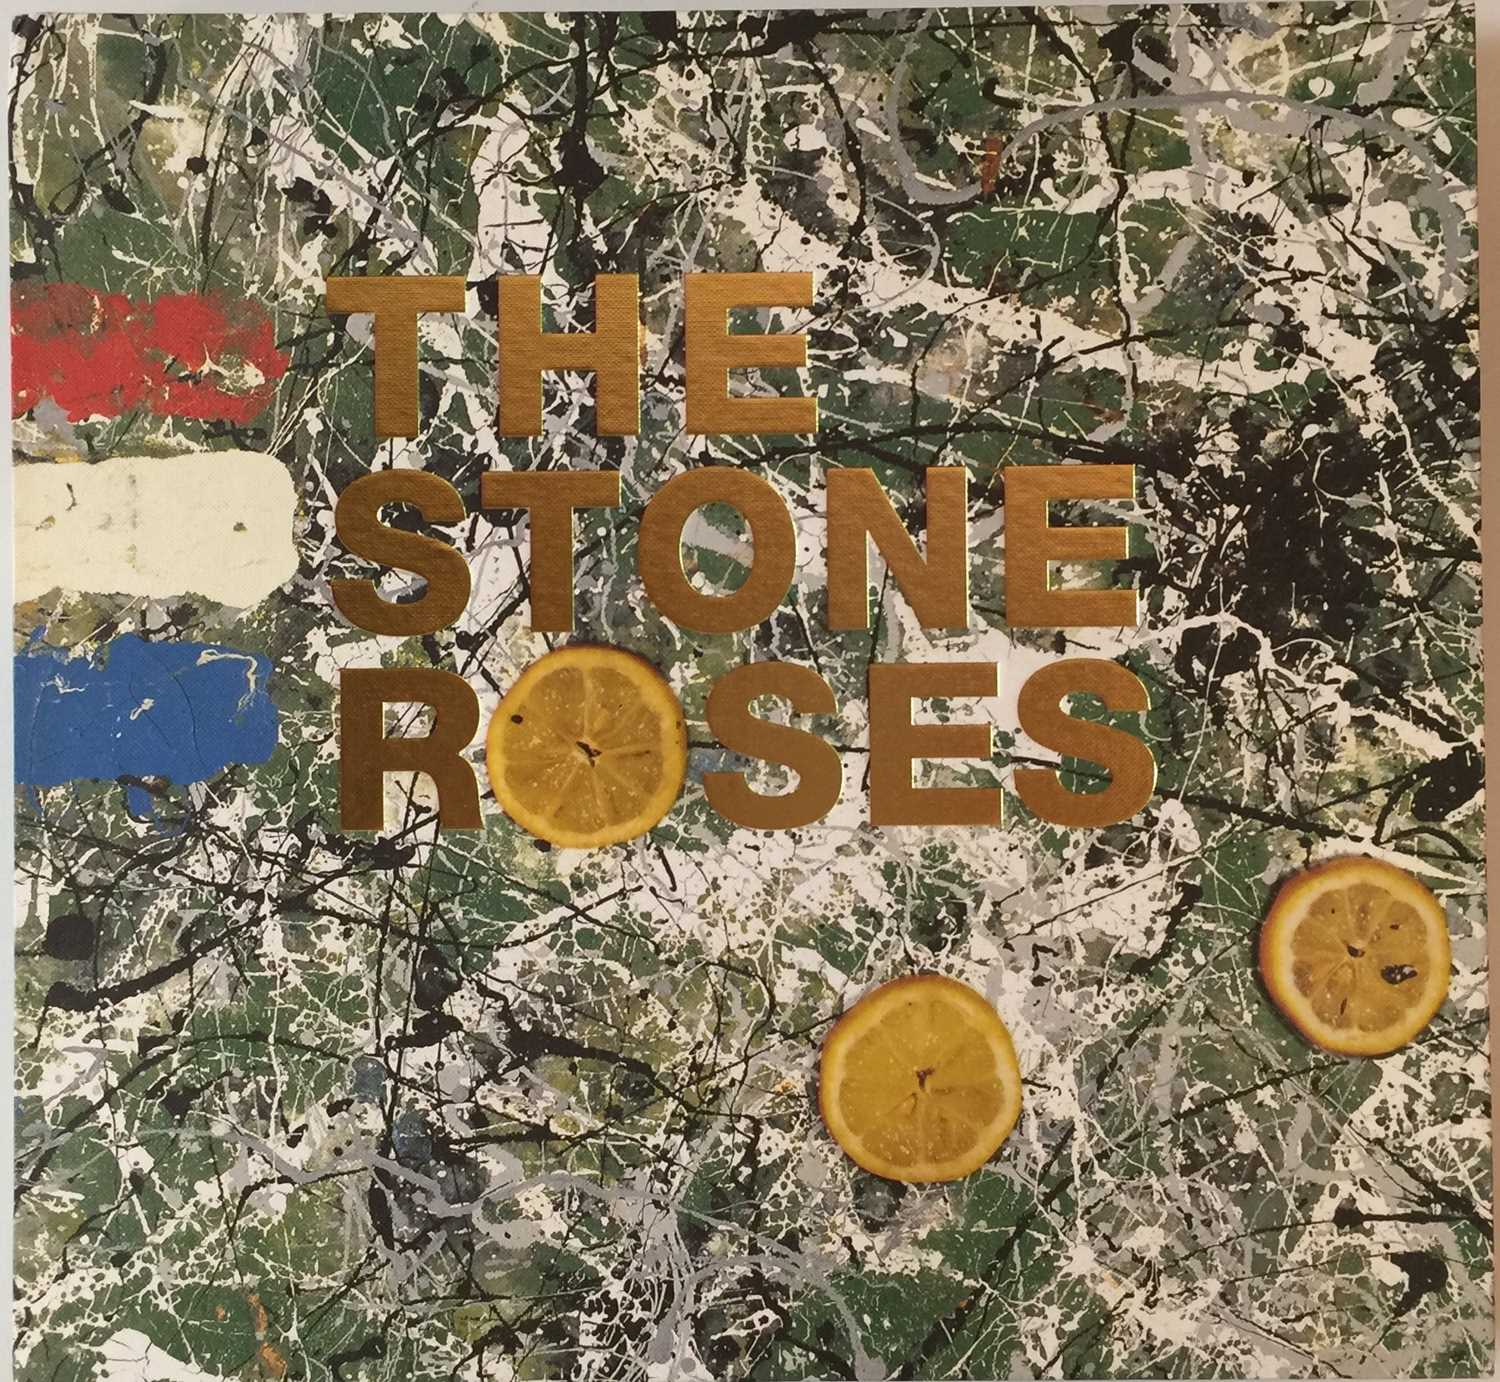 THE STONE ROSES - THE STONE ROSES (2009 LIMITED EDITION LP/CD/DVD BOX SET - SILVERTONE 88697430302)